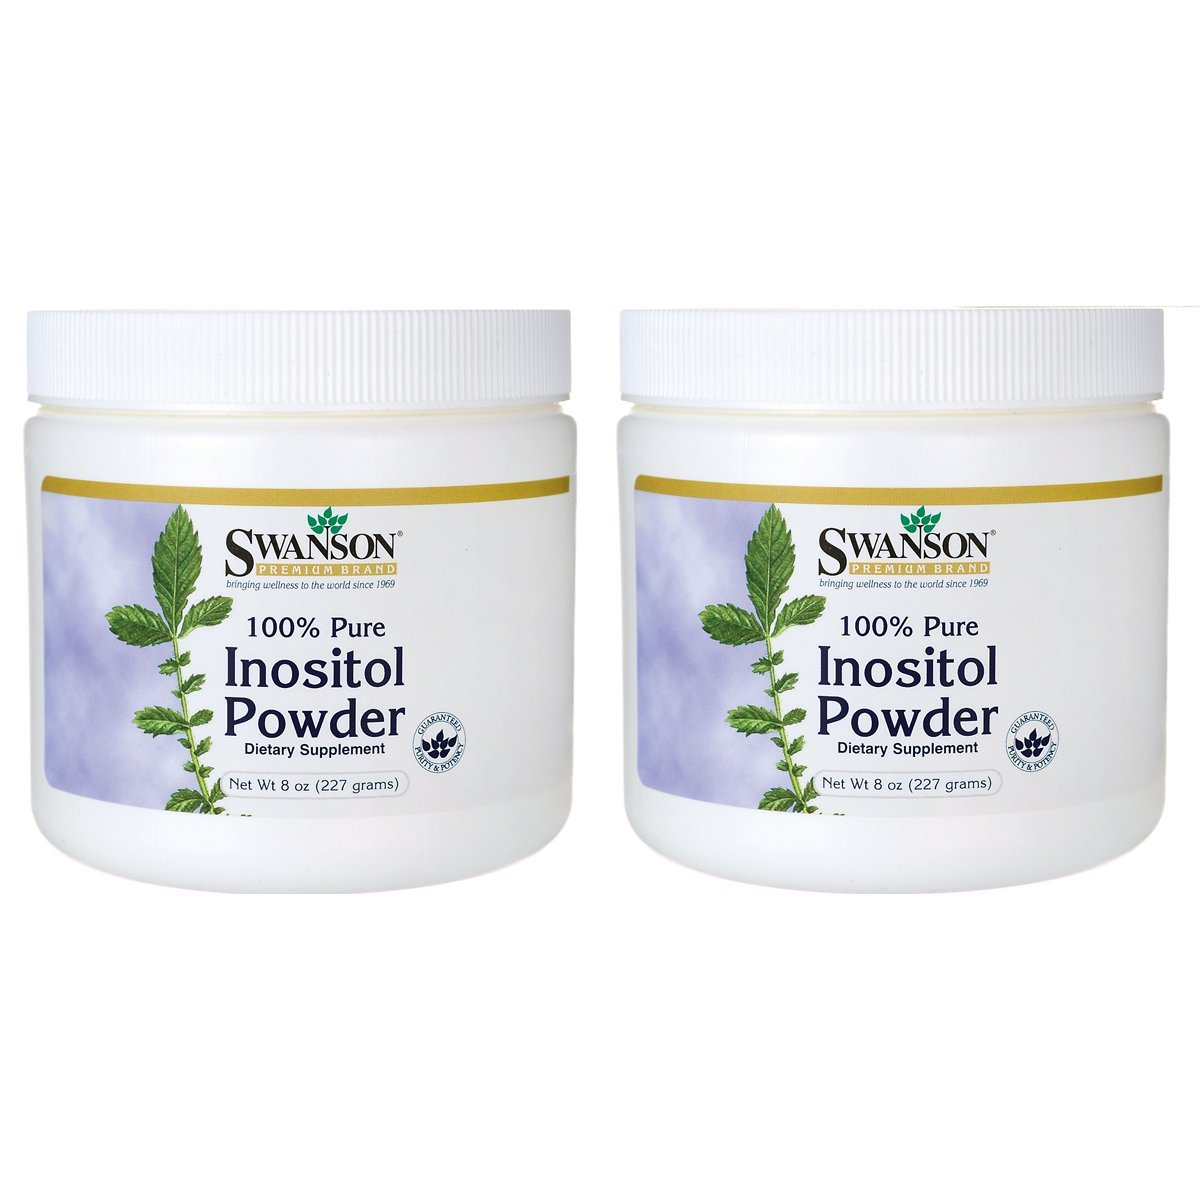 Swanson 100% Pure Inositol Powder 8 Ounce (227 g) Pwdr 2 Pack